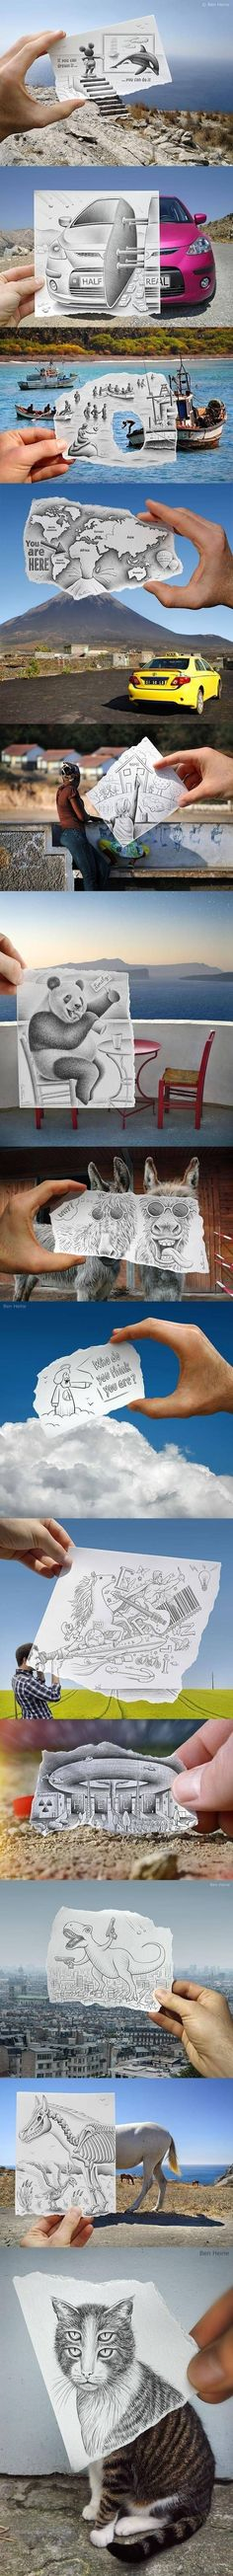 Cool drawings... Do something similar - maybe cut a chunk out of a photograph (laminate) then have them fill the space...